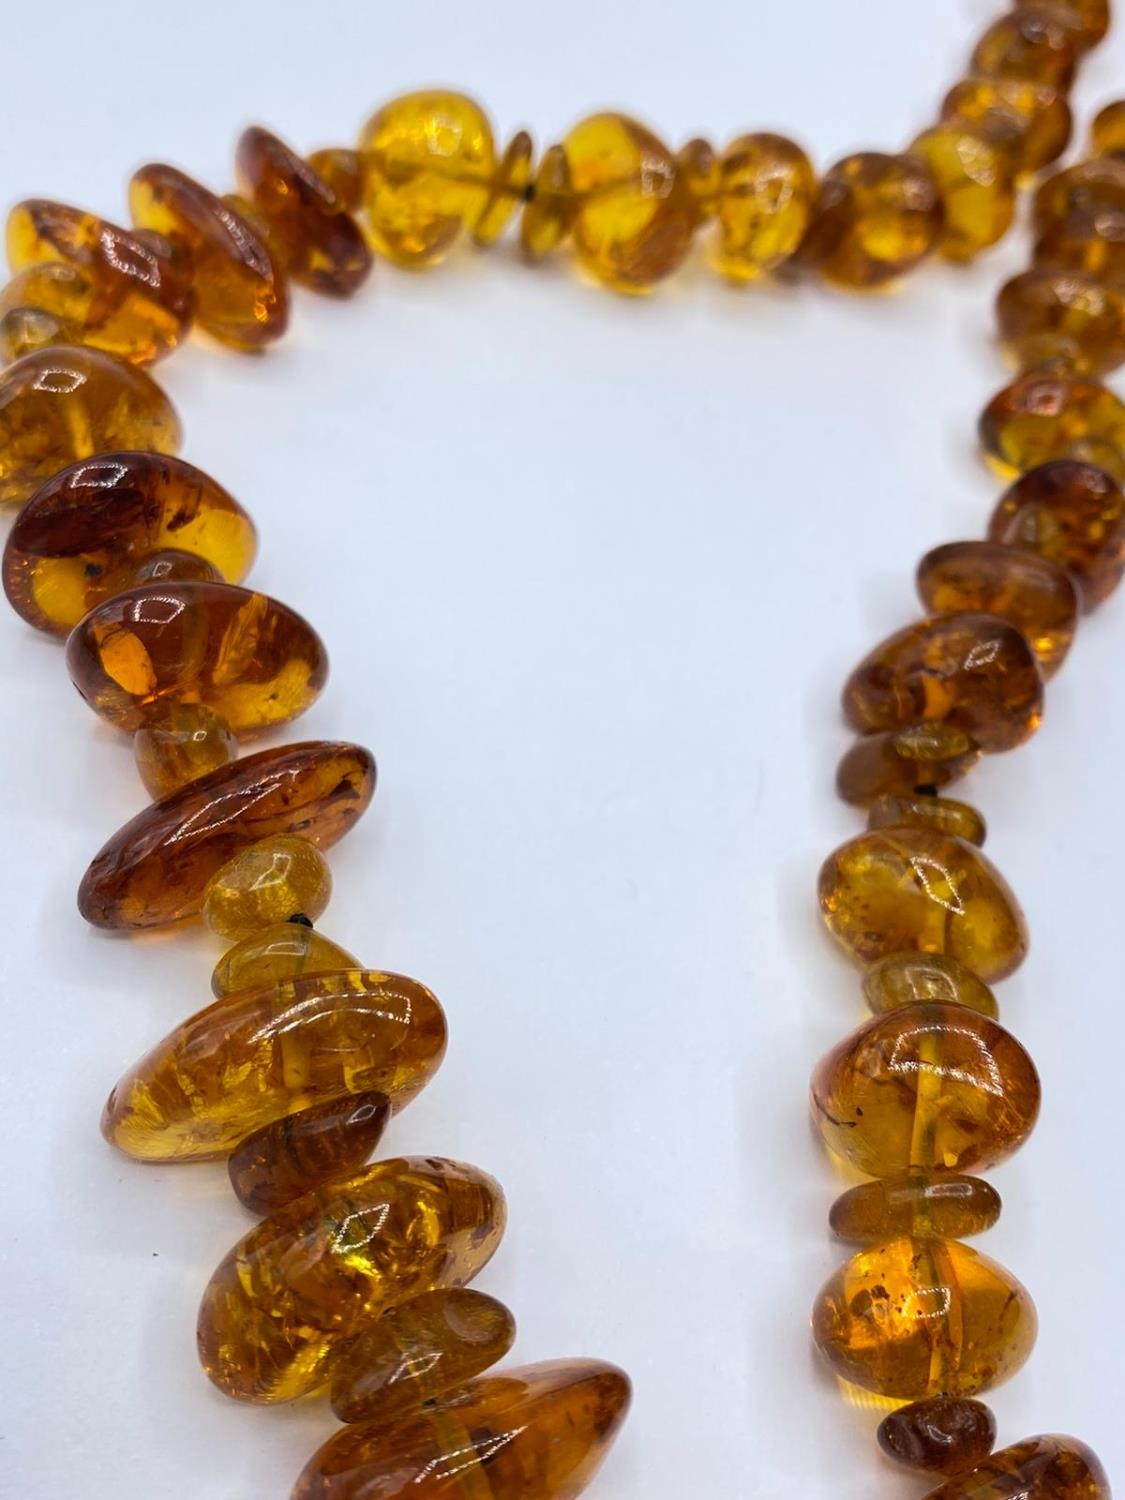 Amber NECKLACE. 76g. 76cm. - Image 2 of 2